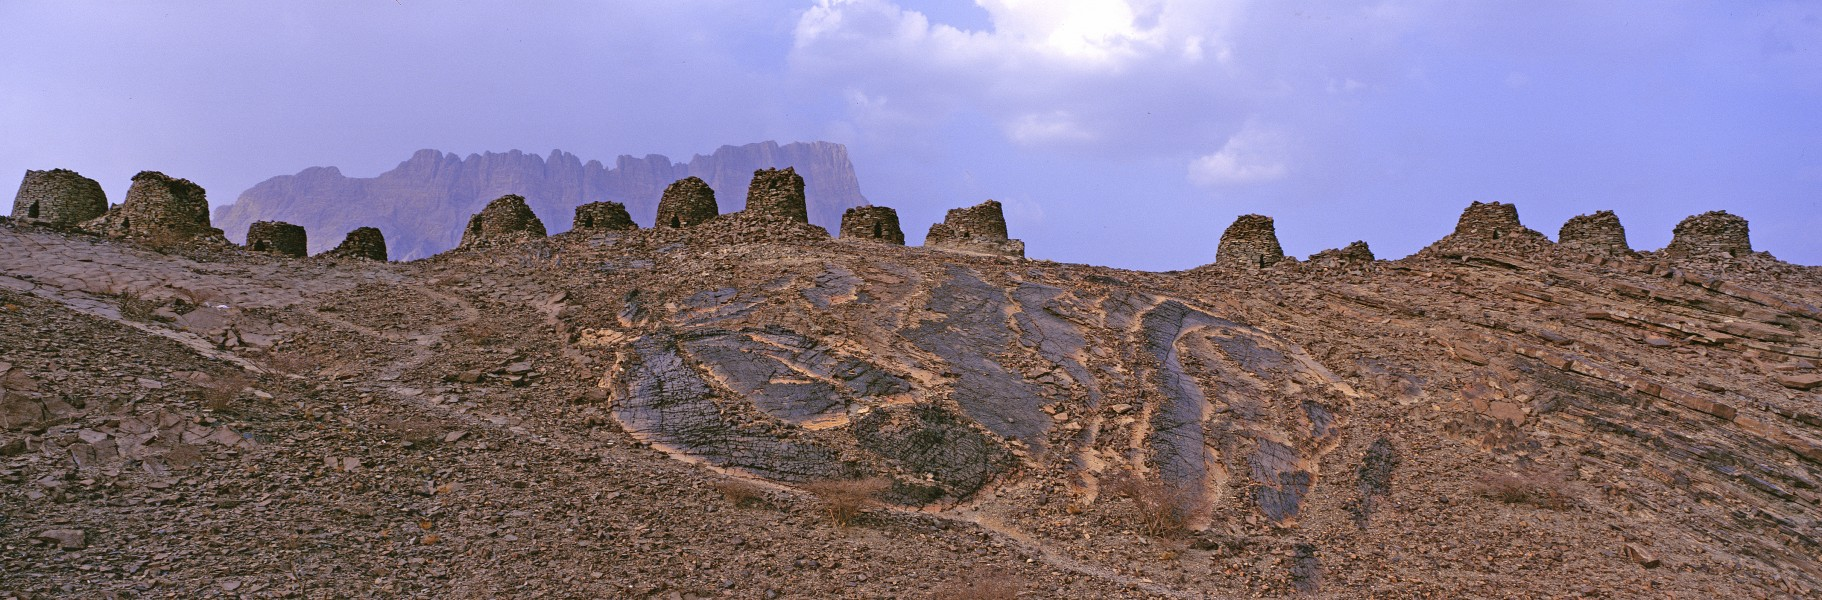 Beehive Tombs, Qubur Juhhal at Al Ayn, Oman